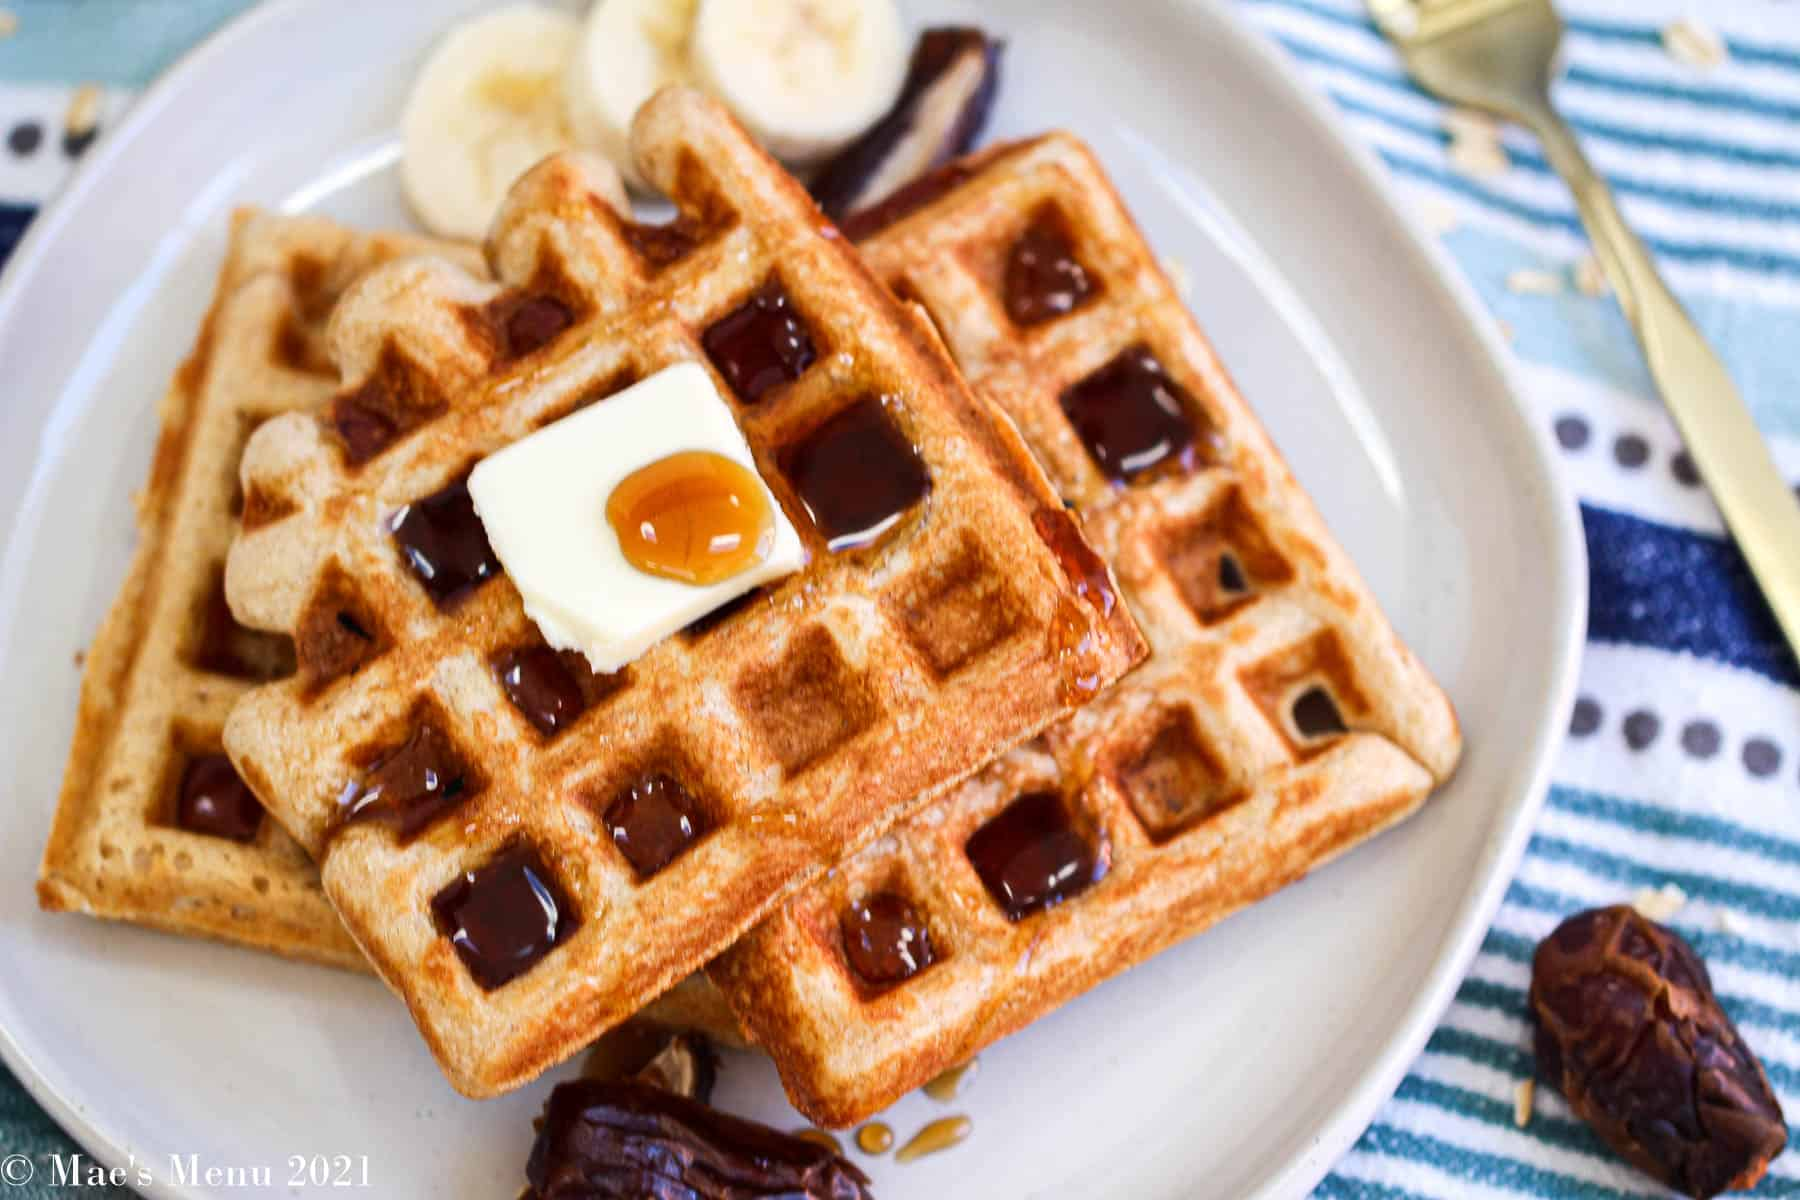 An overhead shot of a plate of whole wheat waffles